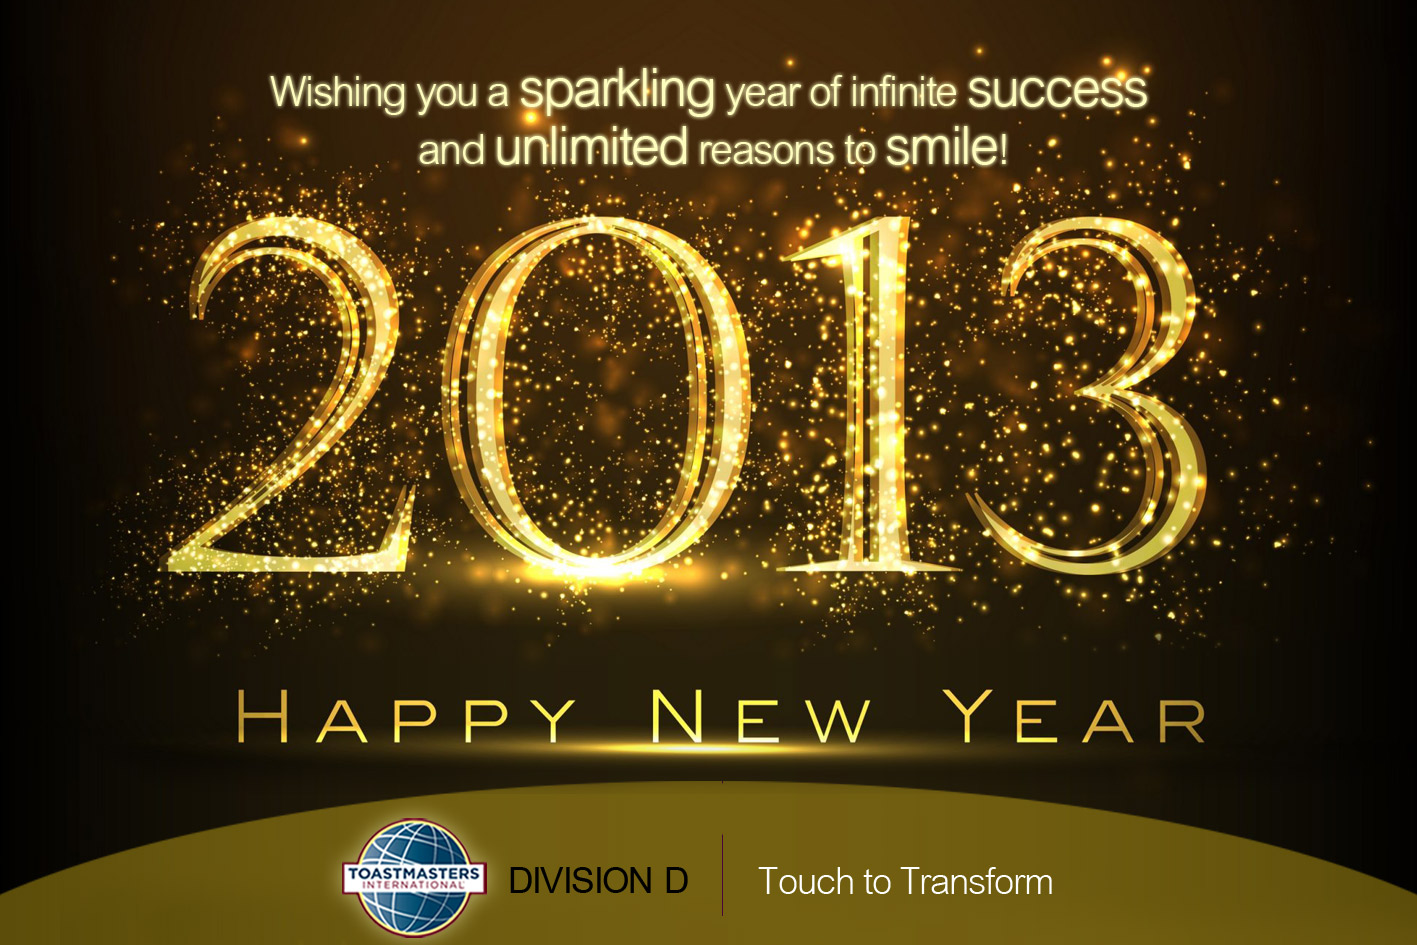 New Year Greetings Toastmasters International Division D Oman